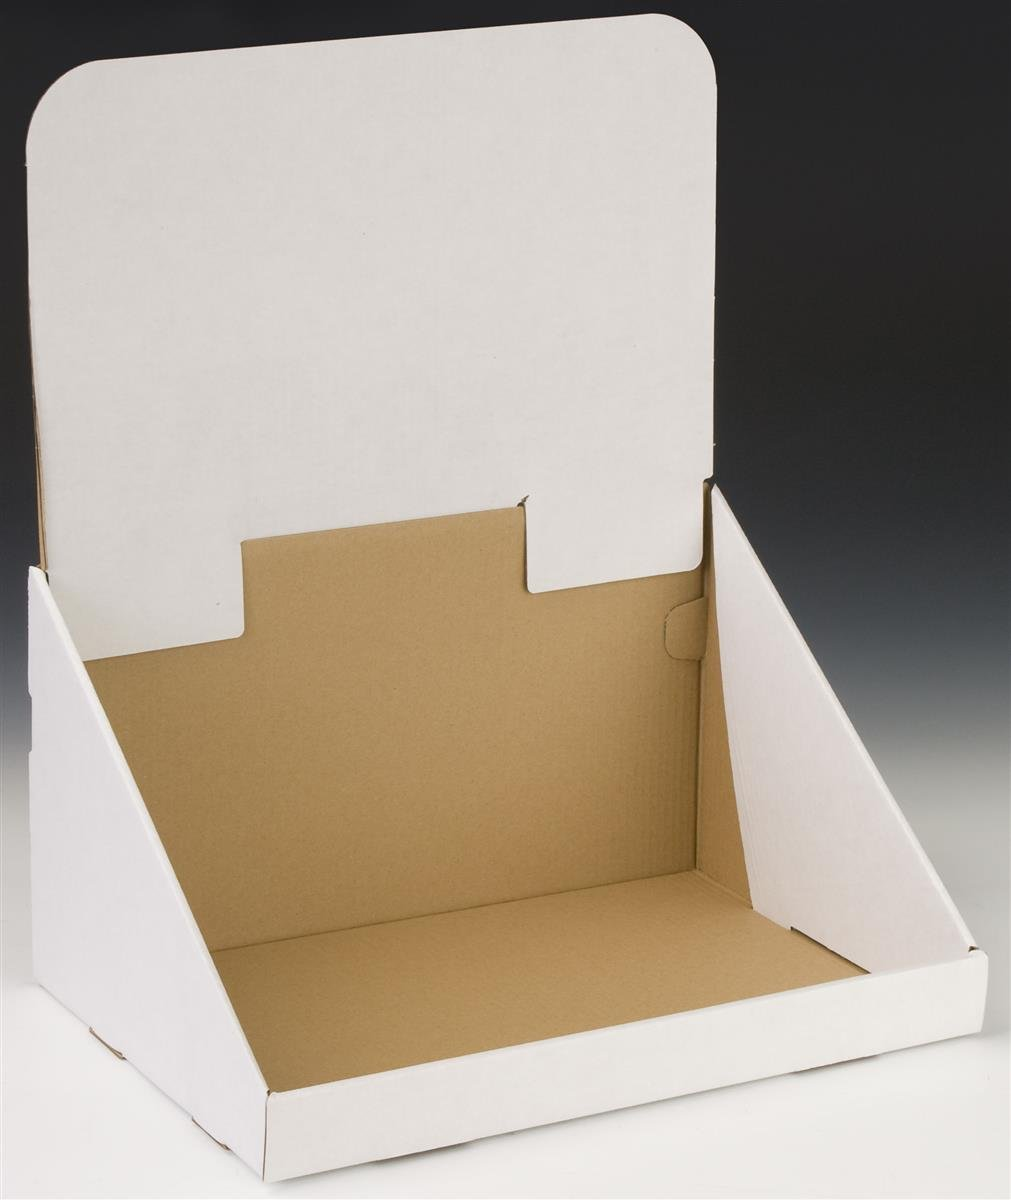 Set of 20, White Countertop Bin Display with Removable Header, Single Compartment - Corrugated Cardboard by Displays2go (Image #1)